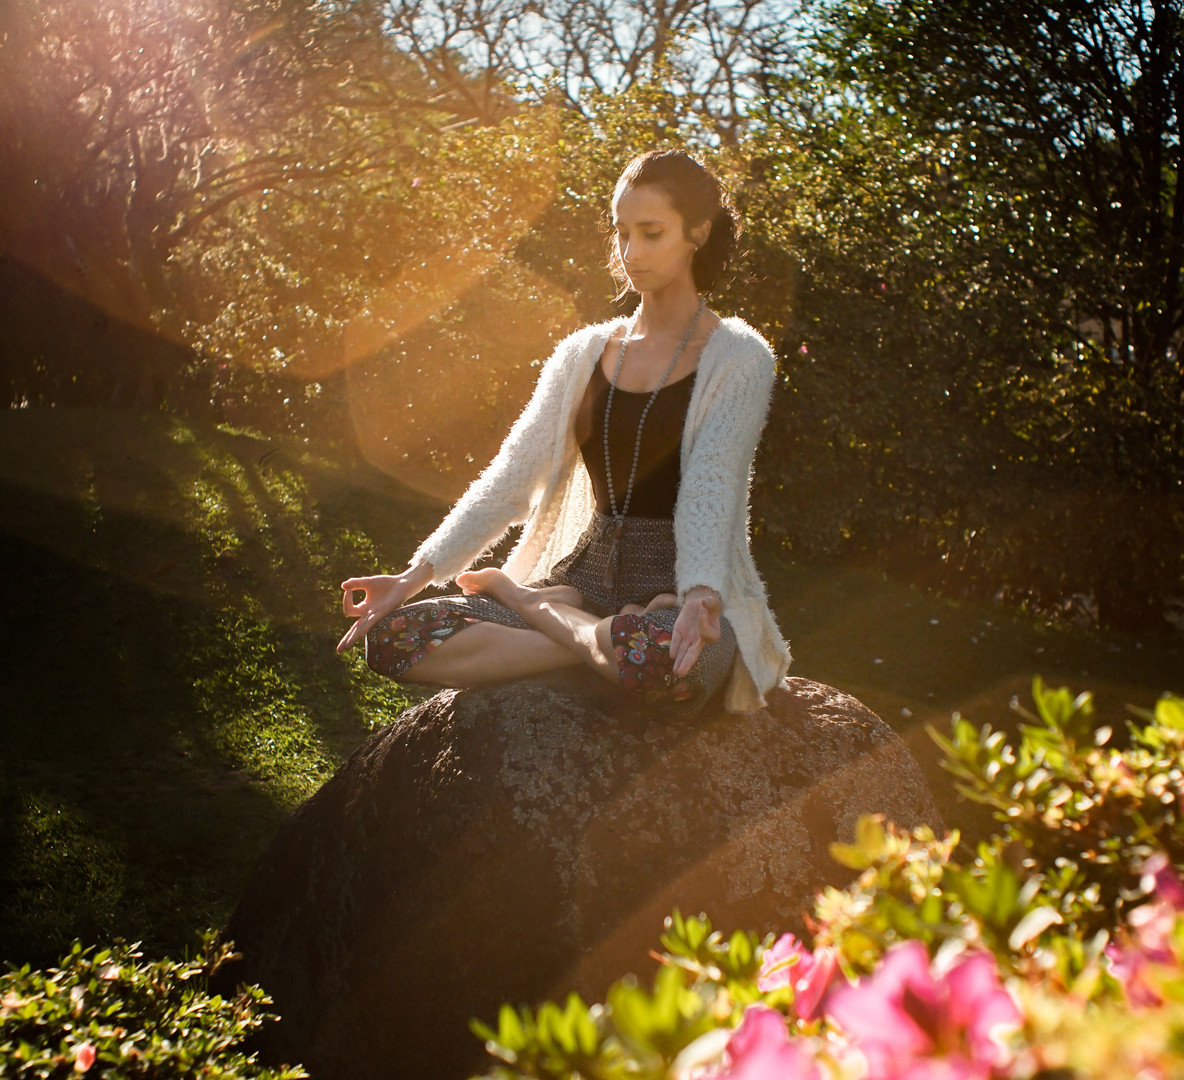 woman-meditating-on-rock-2597205.jpg